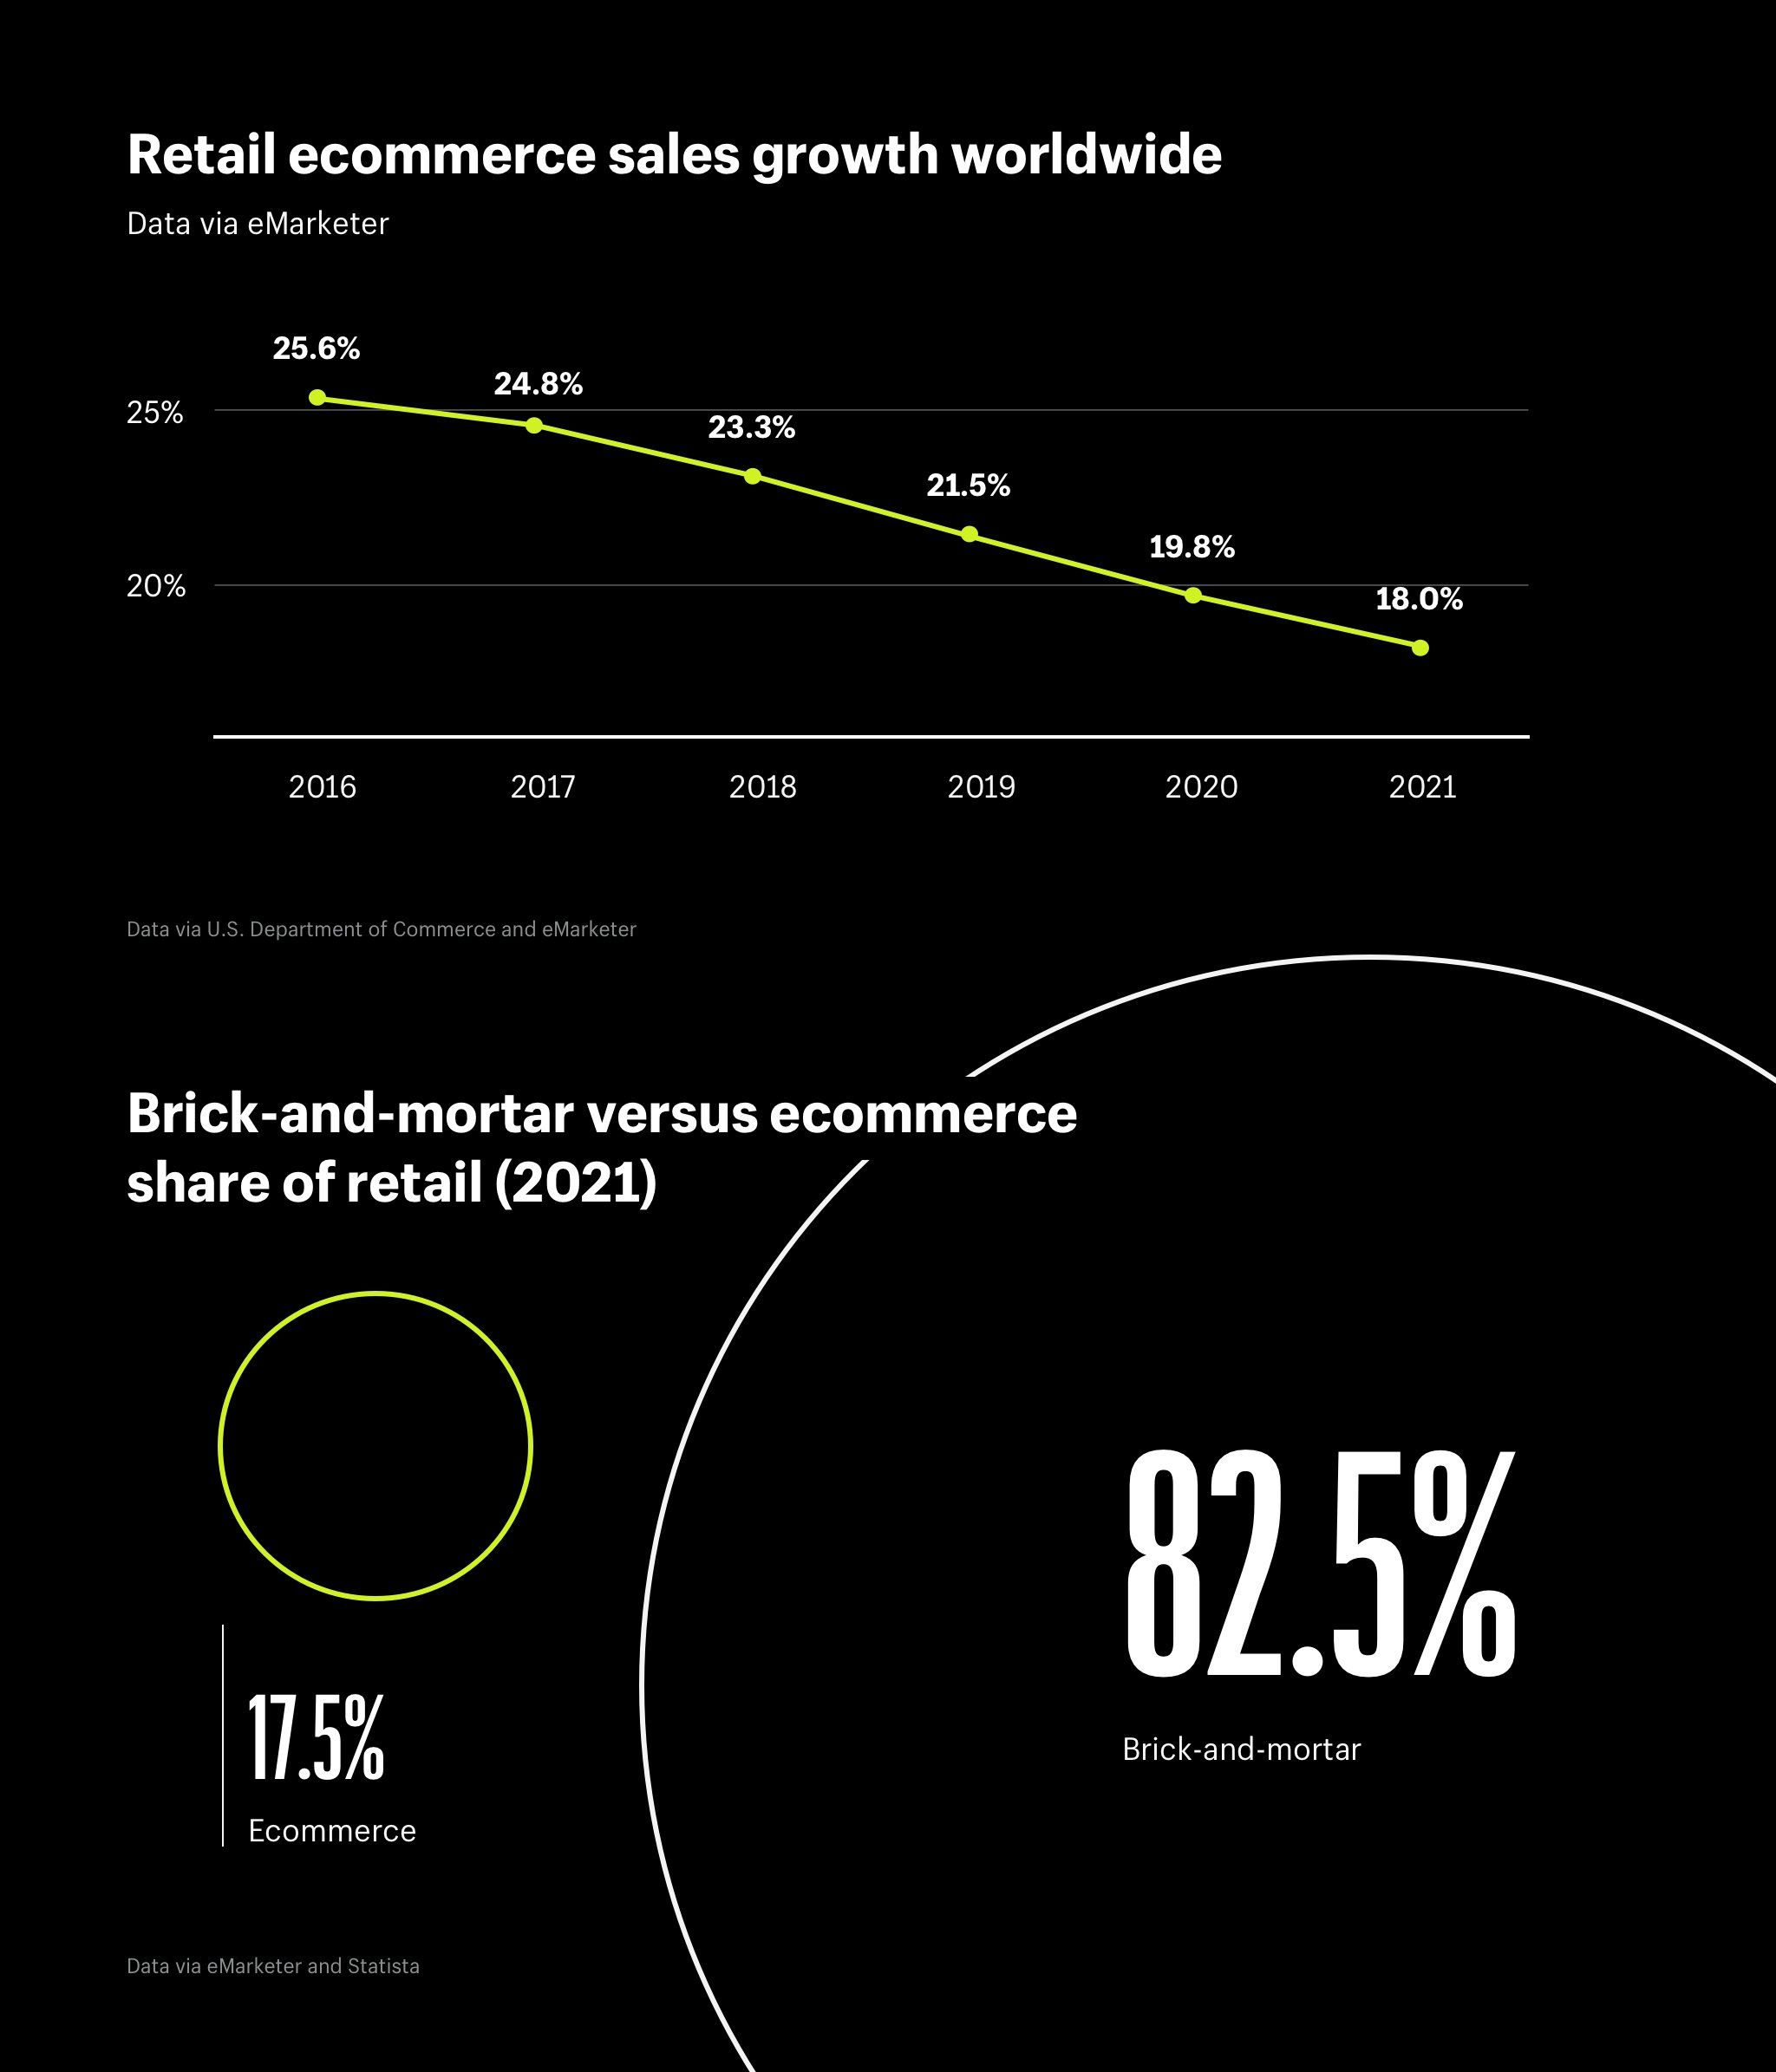 e014fda59bc02 Retail ecommerce sales growth worldwide and brick-and-mortar versus  ecommerce share of retail (2021)